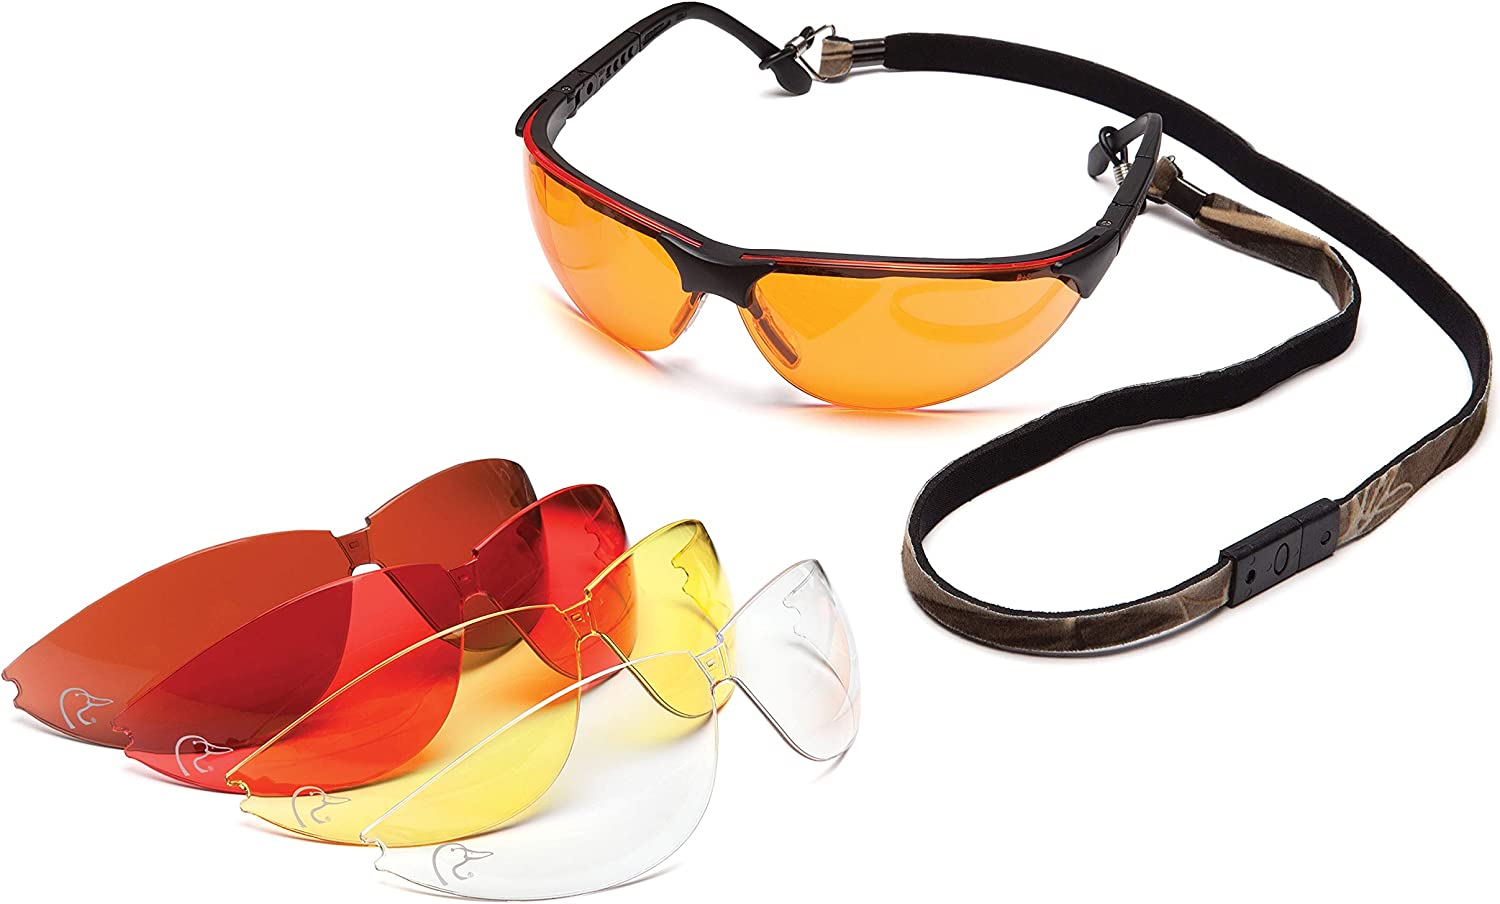 Ducks Unlimited Shooting Eyewear Kit With 5 Anti-Fog Lens Options : Hunting Safety Glasses : Sports & Outdoors